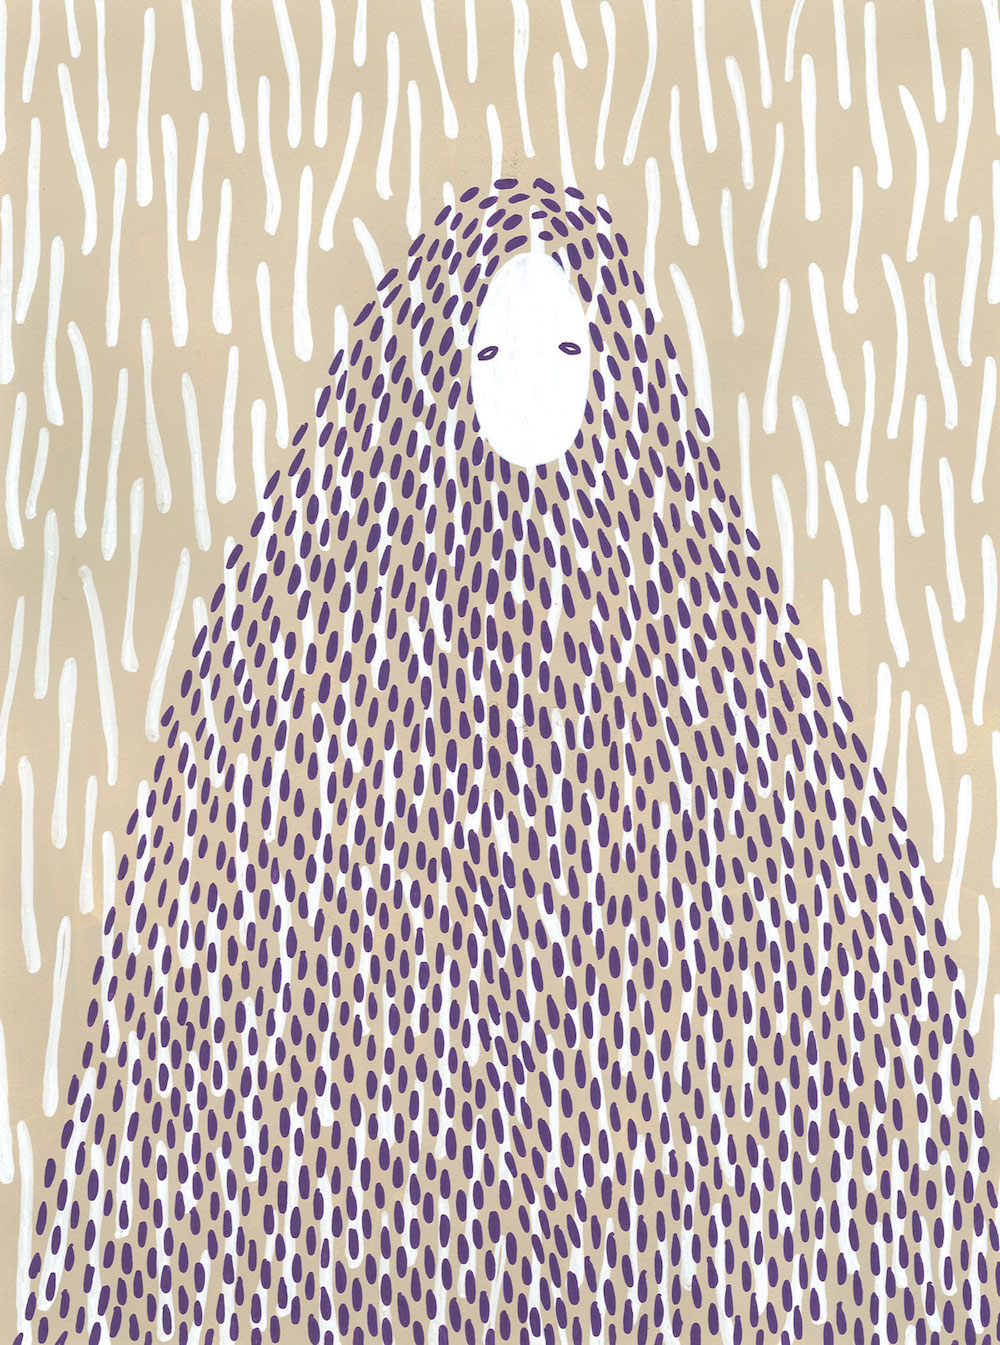 illustration, illustrations, illustrator, illustrators, cloak, cloaks, eyes, eye, lines, oval, droplet, droplets, grain, grains, beige, tan, sad